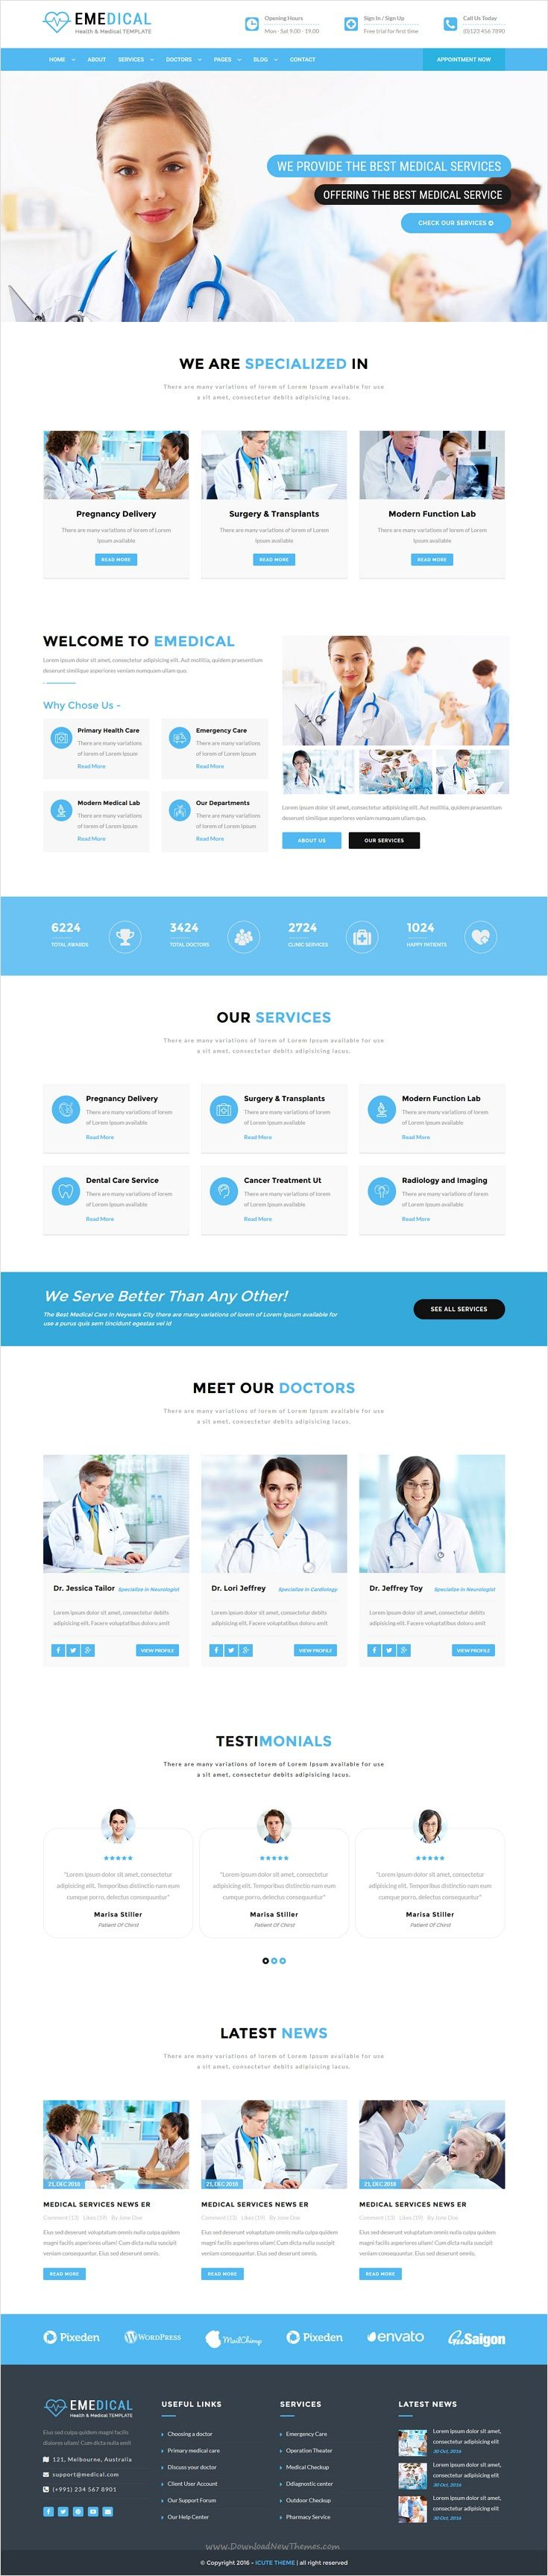 eMedical is a fully responsive 2 in 1 Bootstrap #HTML5 template for Health, #clinics and #Medical organizations website download now➩ https://themeforest.net/item/emedical-health-medical-respnsive-html5-template/18409189?ref=Datasata